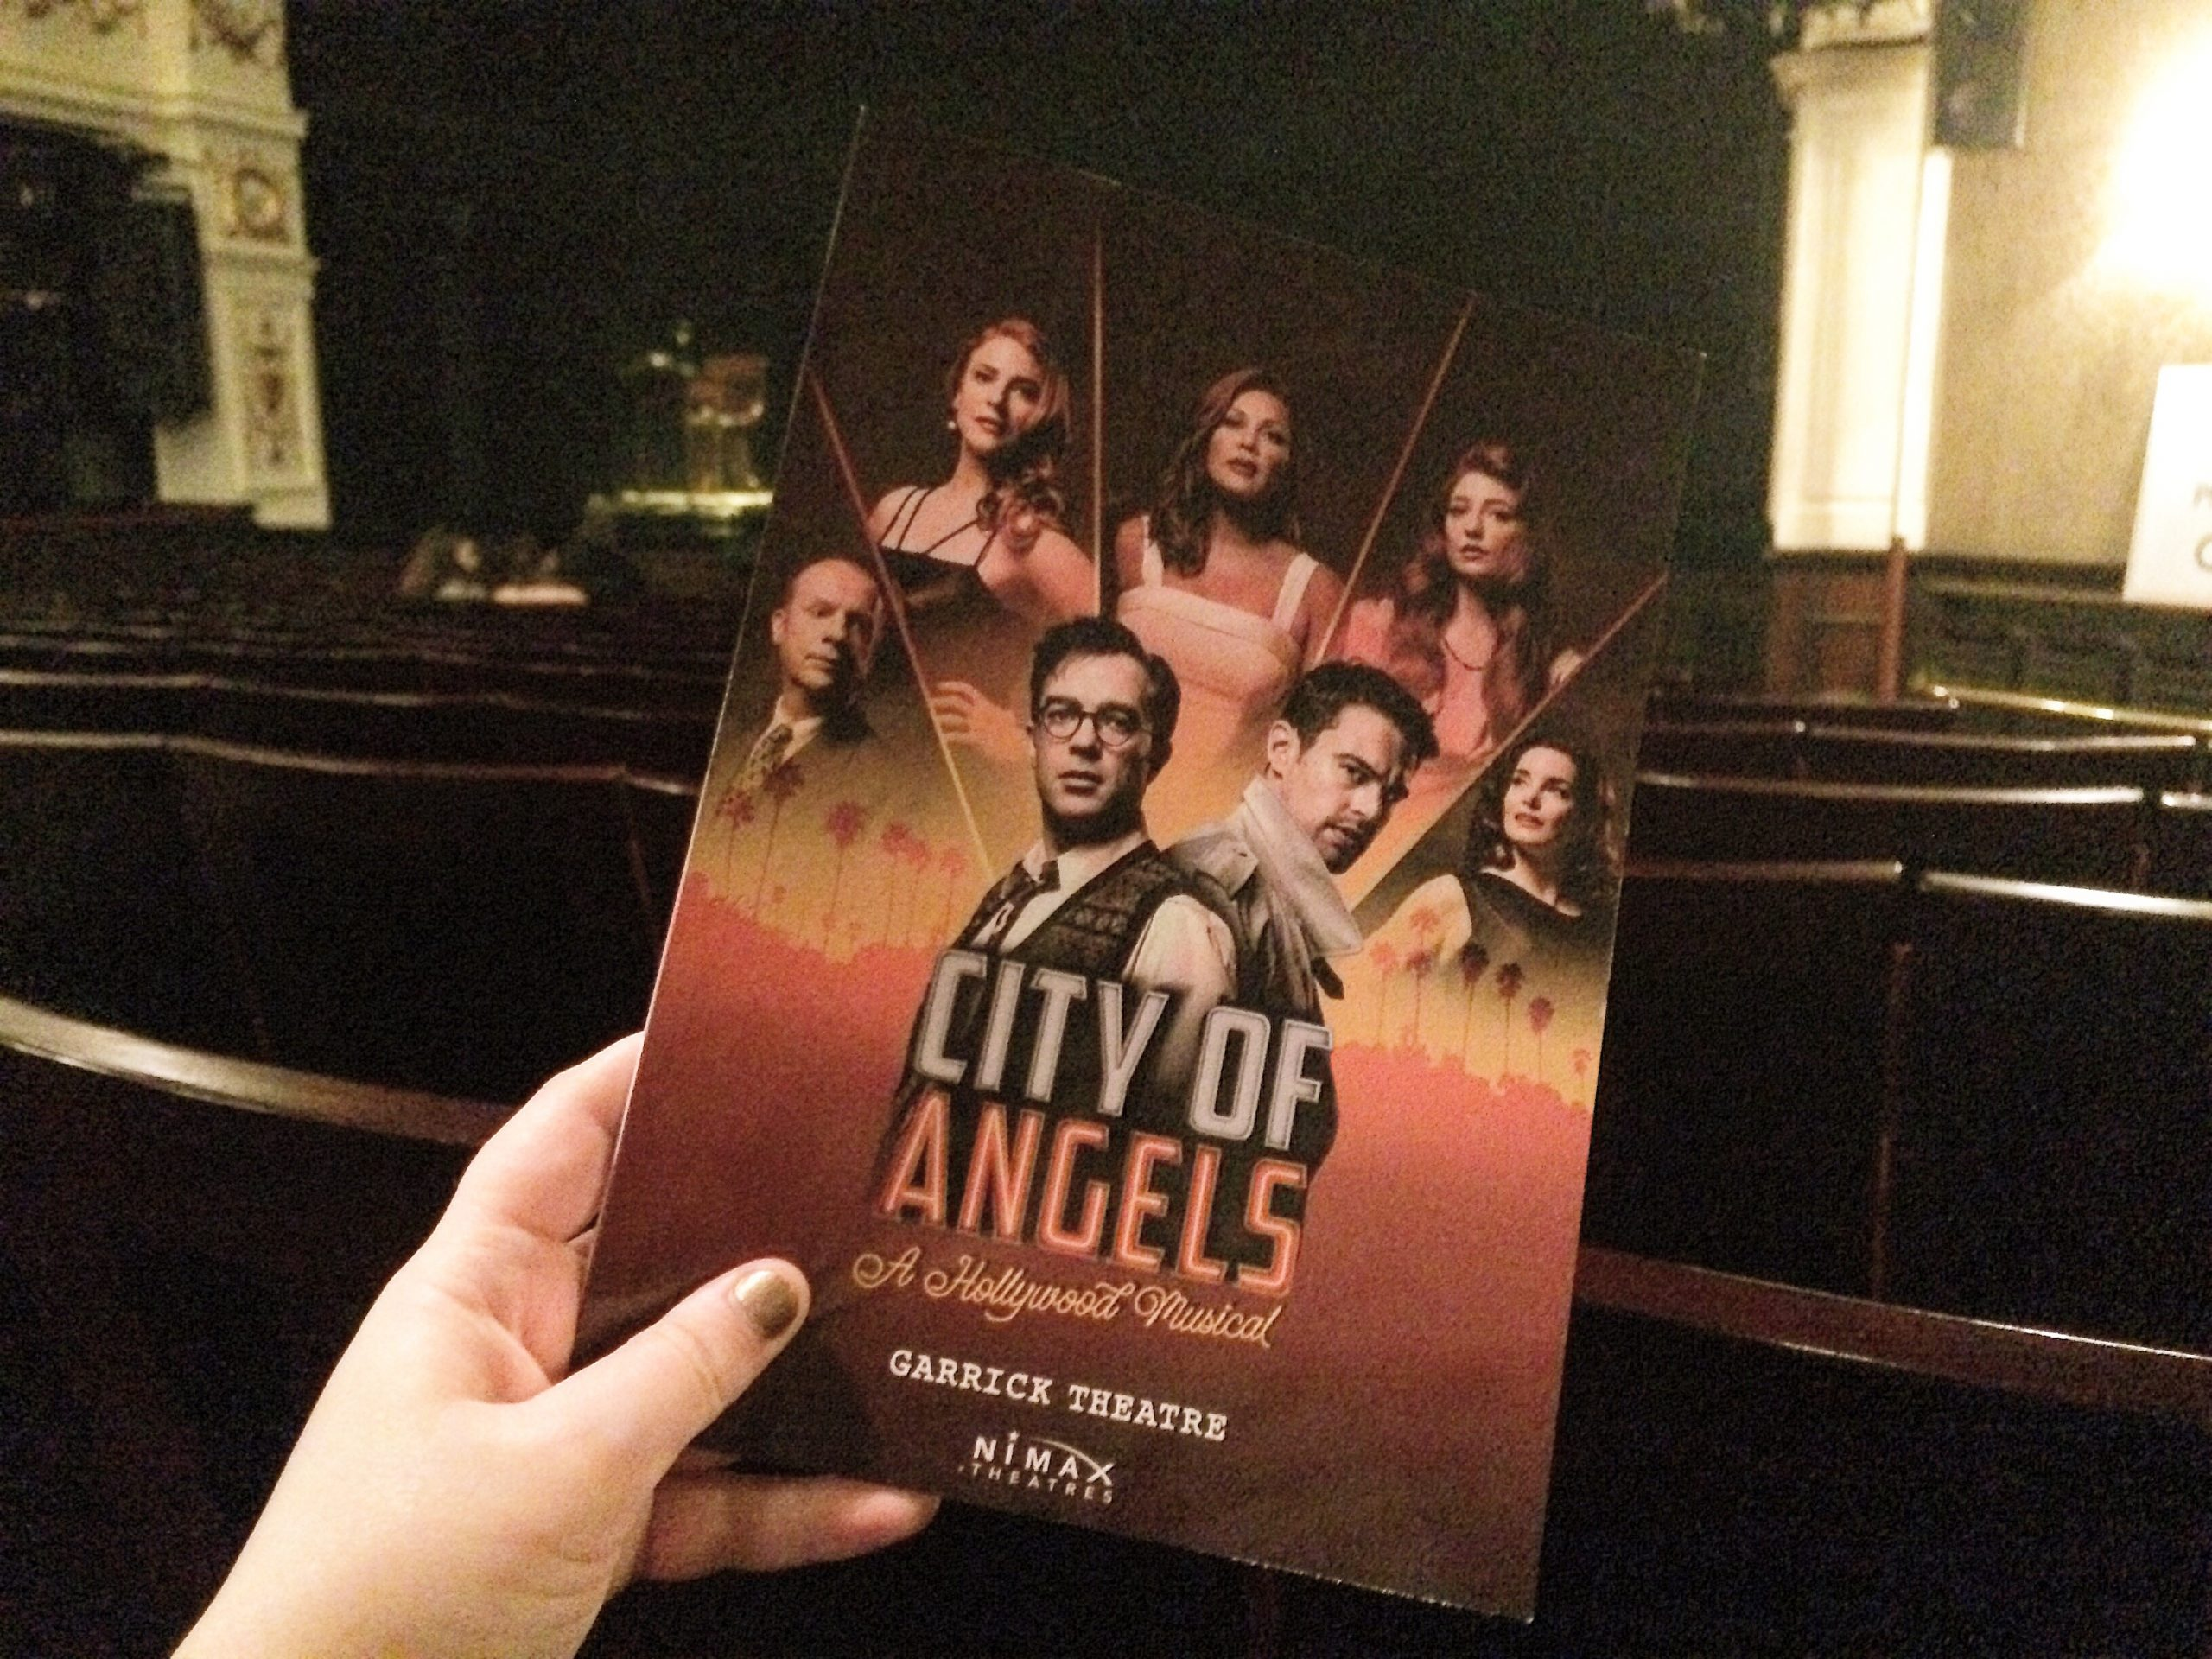 city-of-angels-review-image